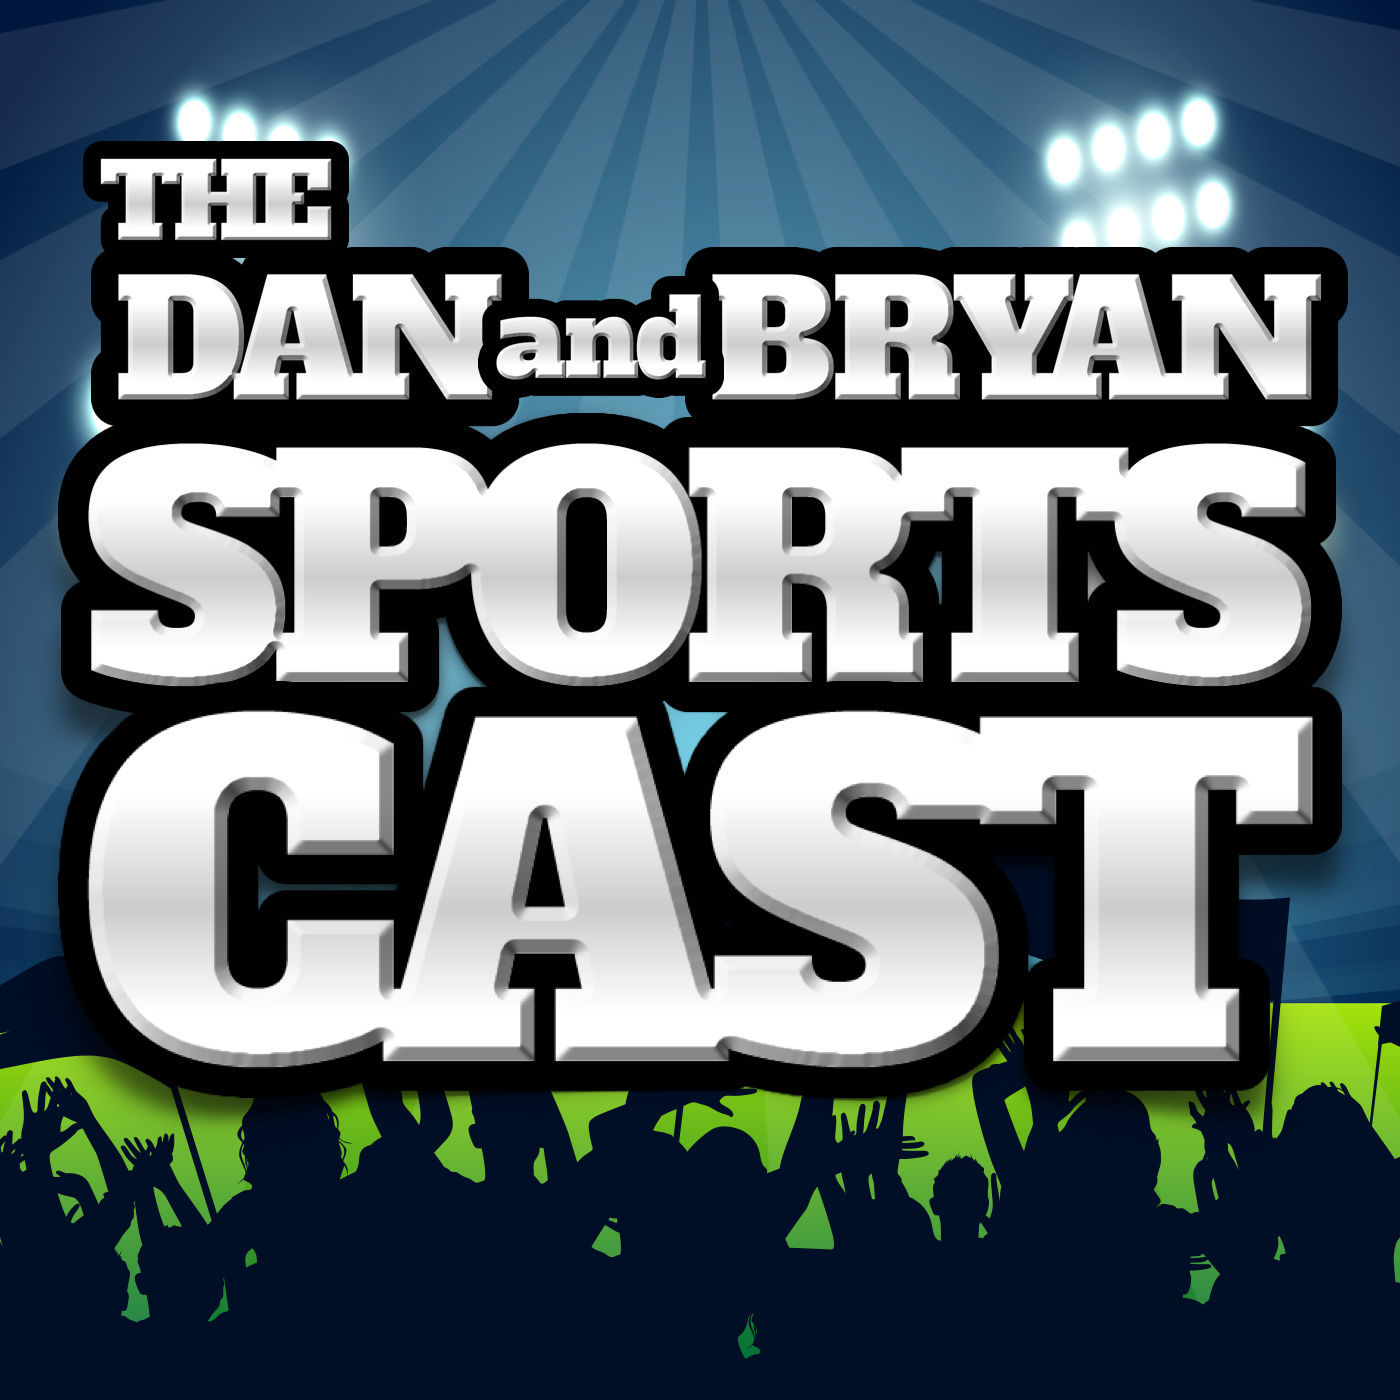 The Dan and Bryan Sportscast Logo